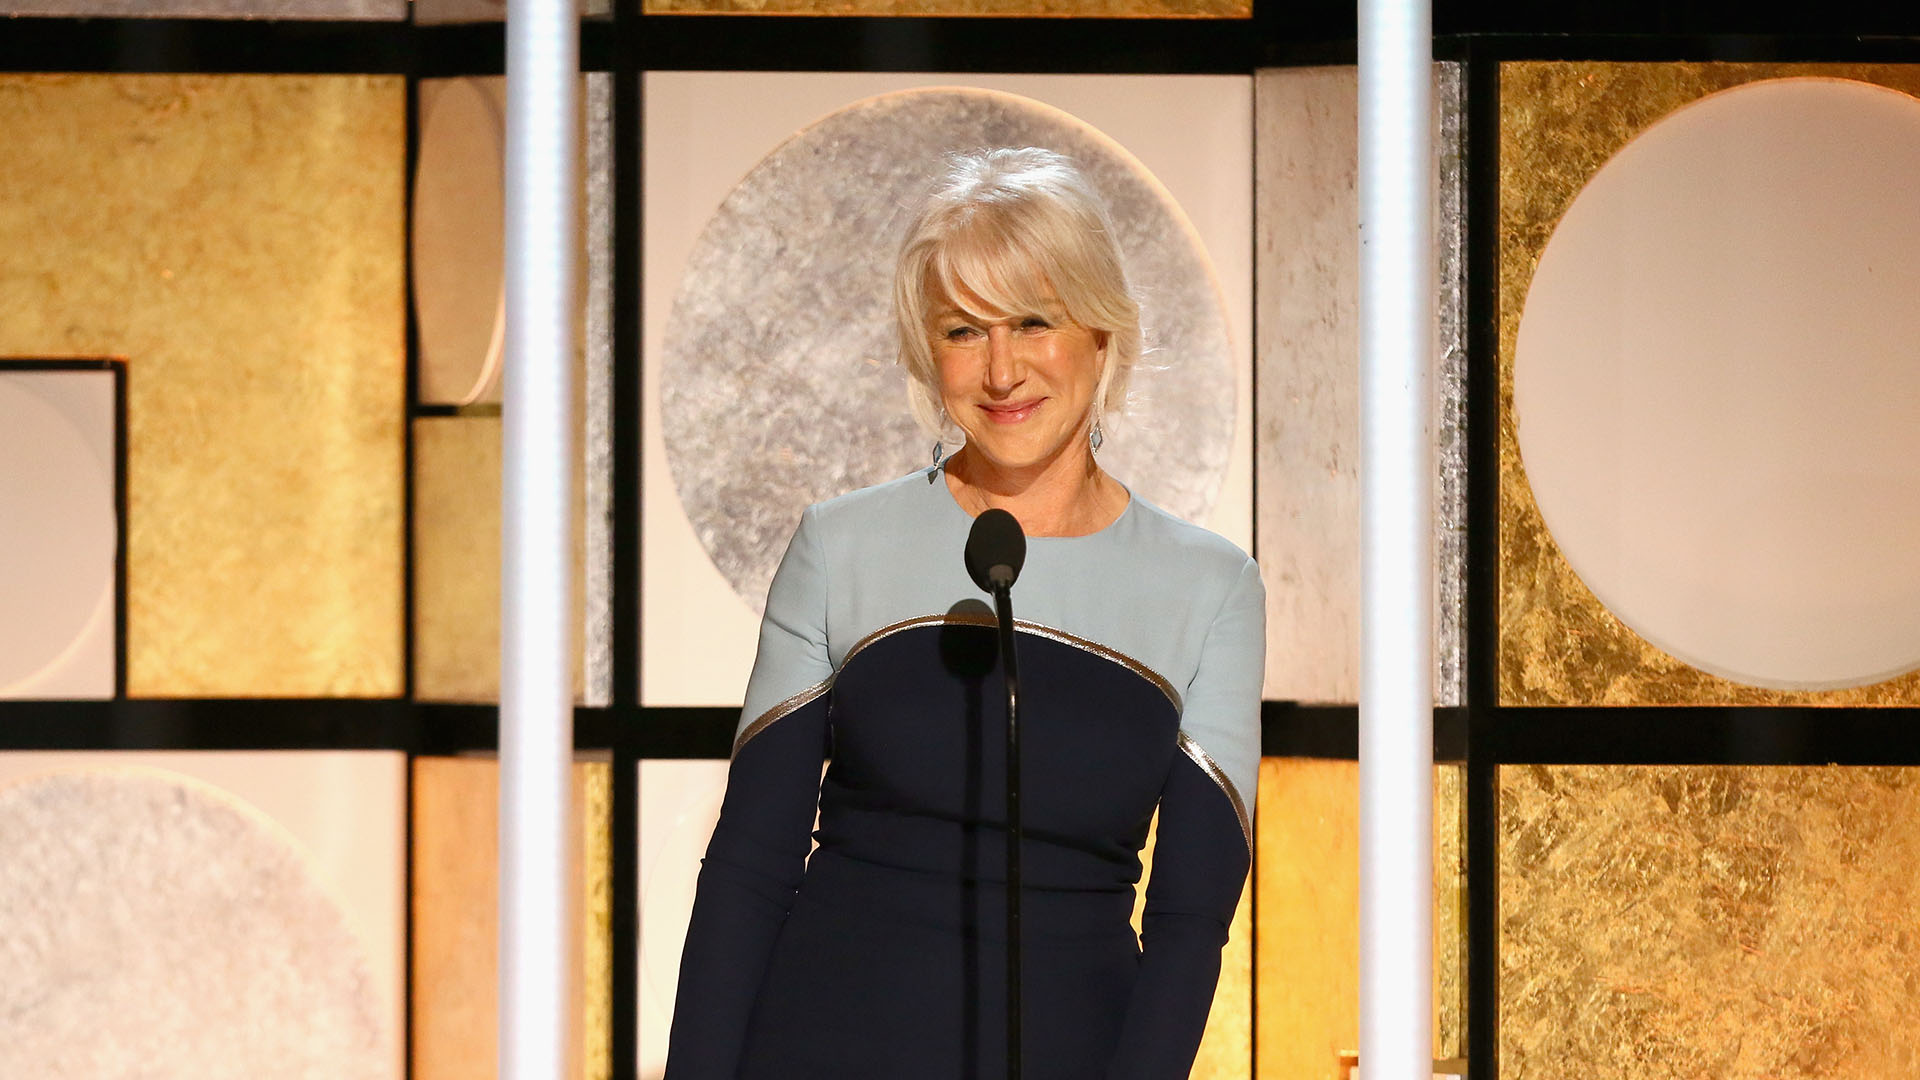 Helen Mirren to be honored at AARP film awards, broadcast for first time on PBS